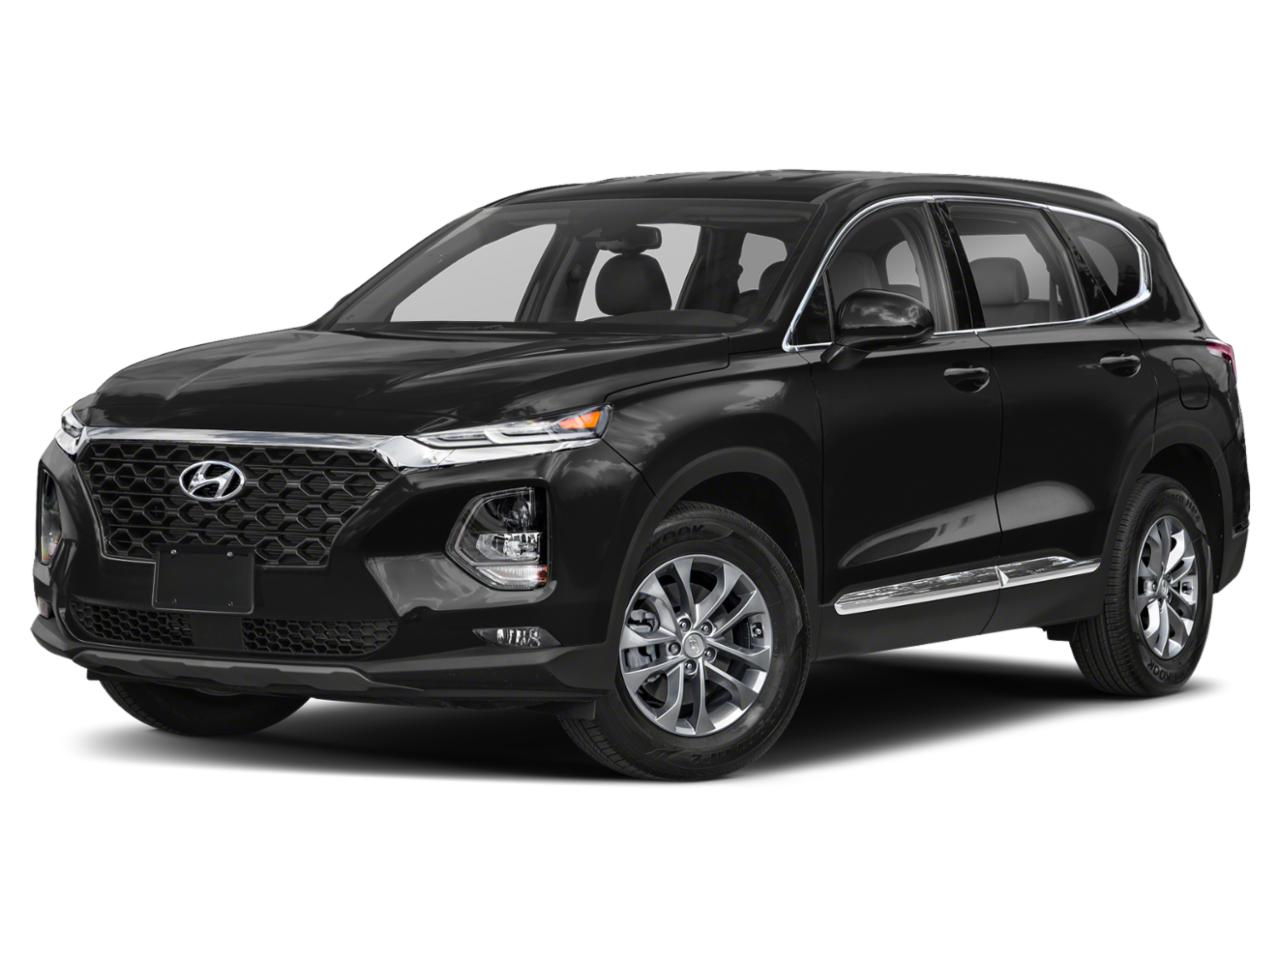 2020 Hyundai Santa Fe Vehicle Photo in Appleton, WI 54913